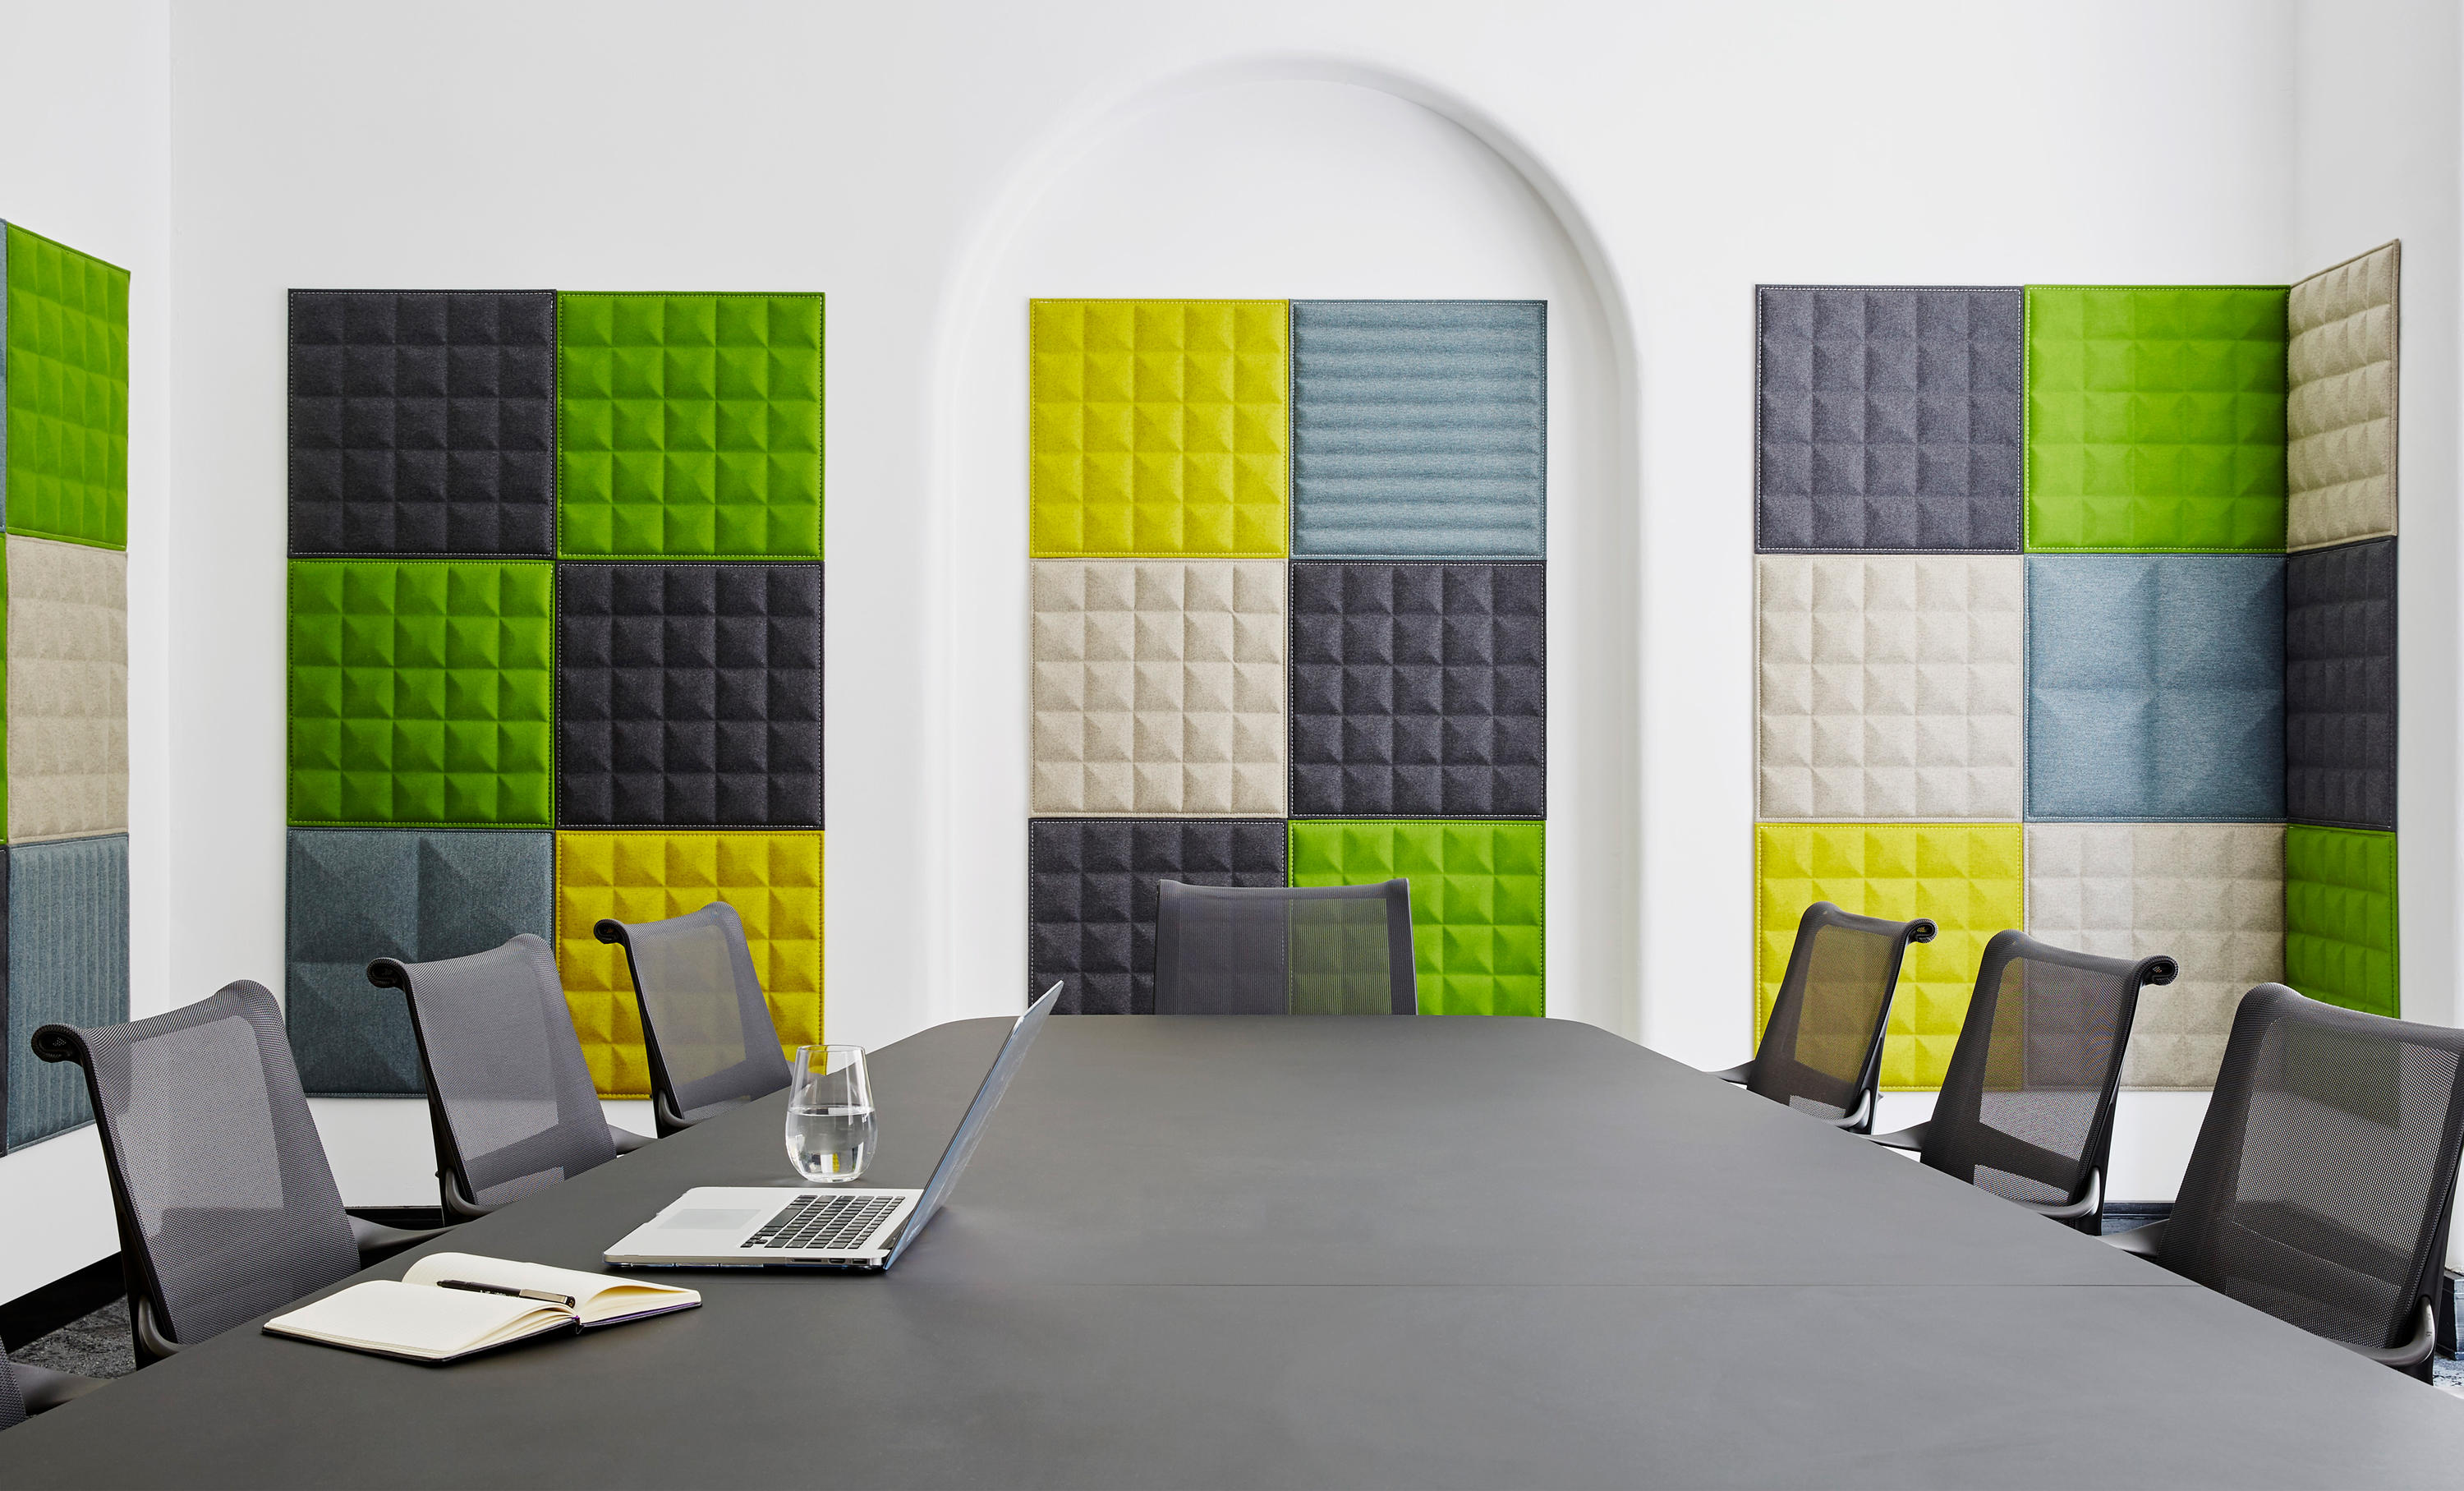 BUZZITILE 3D Acoustic Solutions From BuzziSpace Architonic